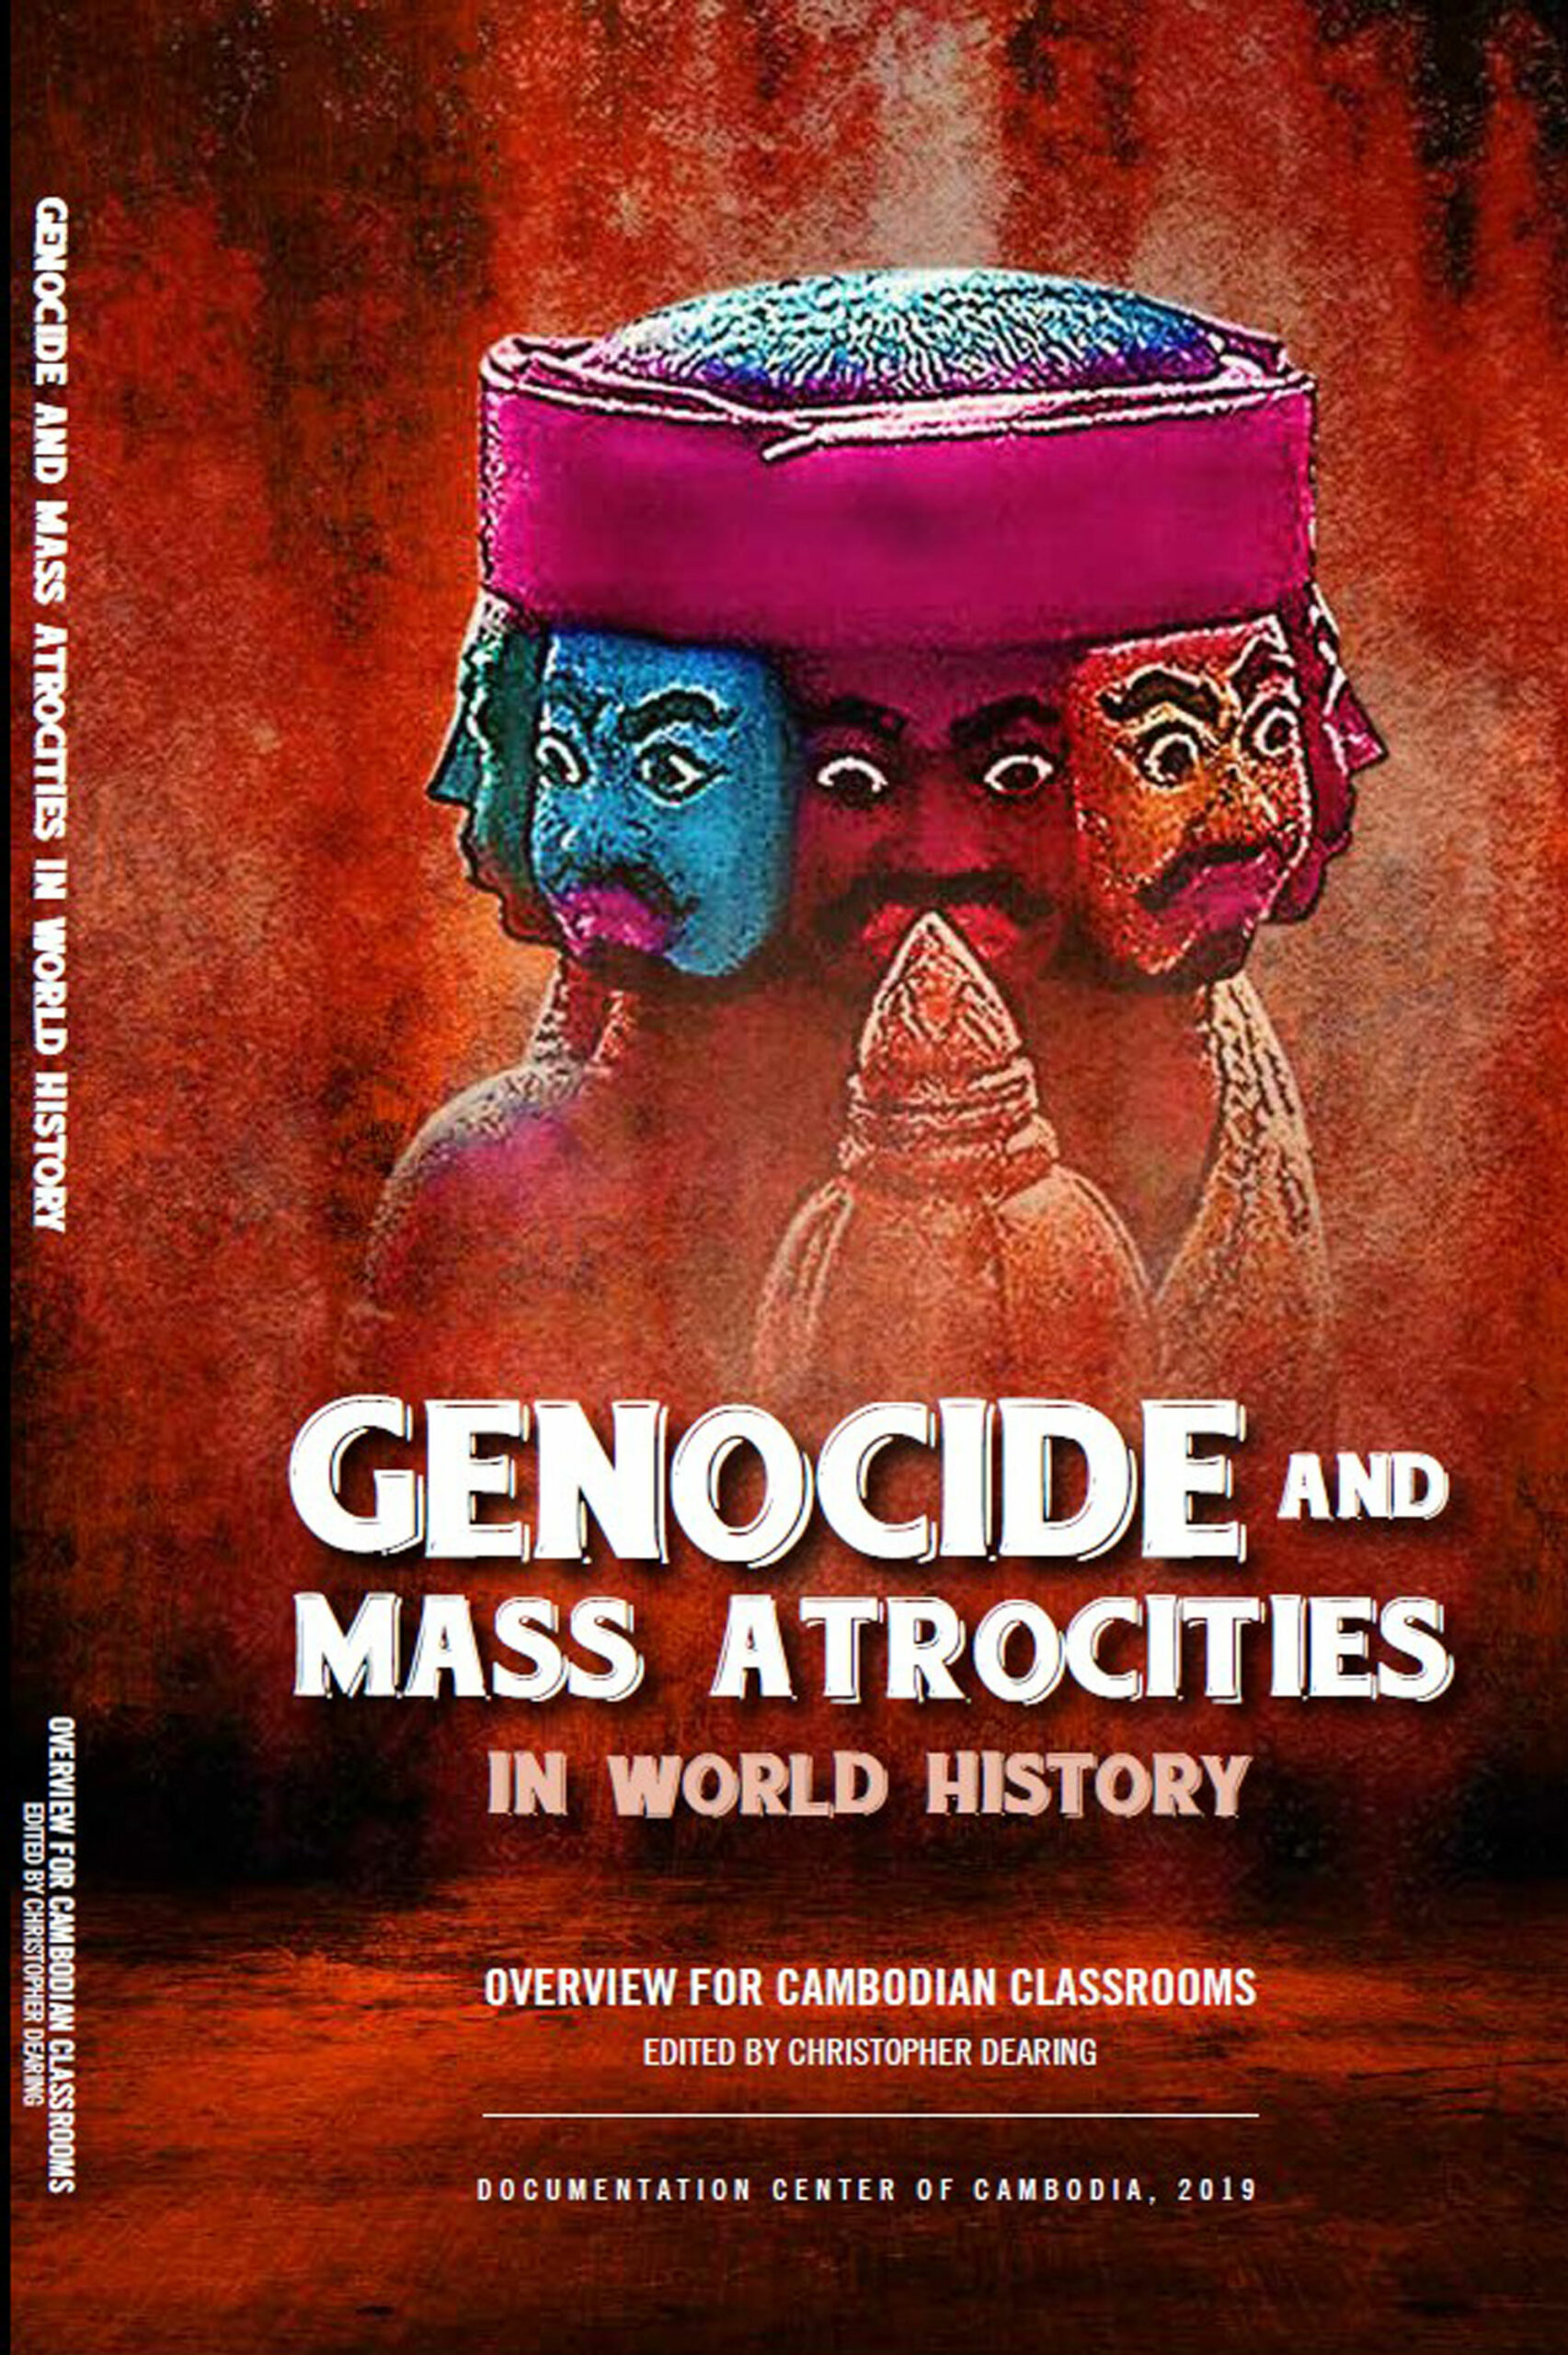 GENOCIDE-AND-MASS-ATROCITIES-IN-THE-WORLD-HISTORY-2019